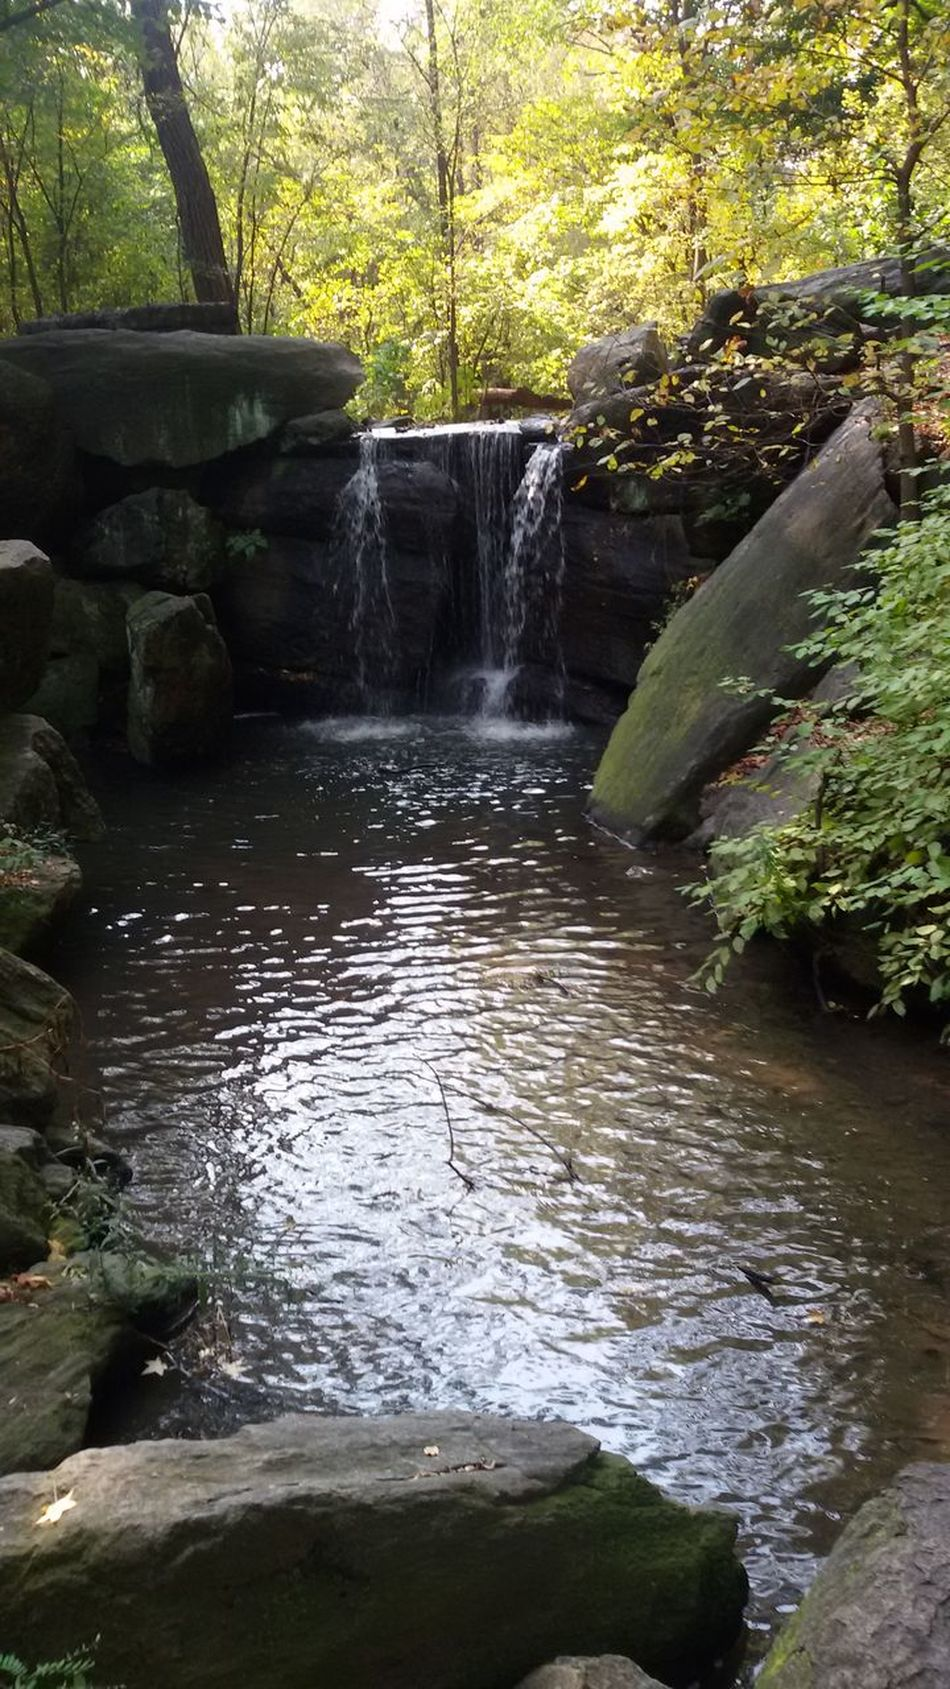 Central Park New York Waterfall Tree Nature Beauty In Nature In A City Water No People Running Water Freshness Nature In The City Samsungphotography Calm Water Calming Views Like Or Love It